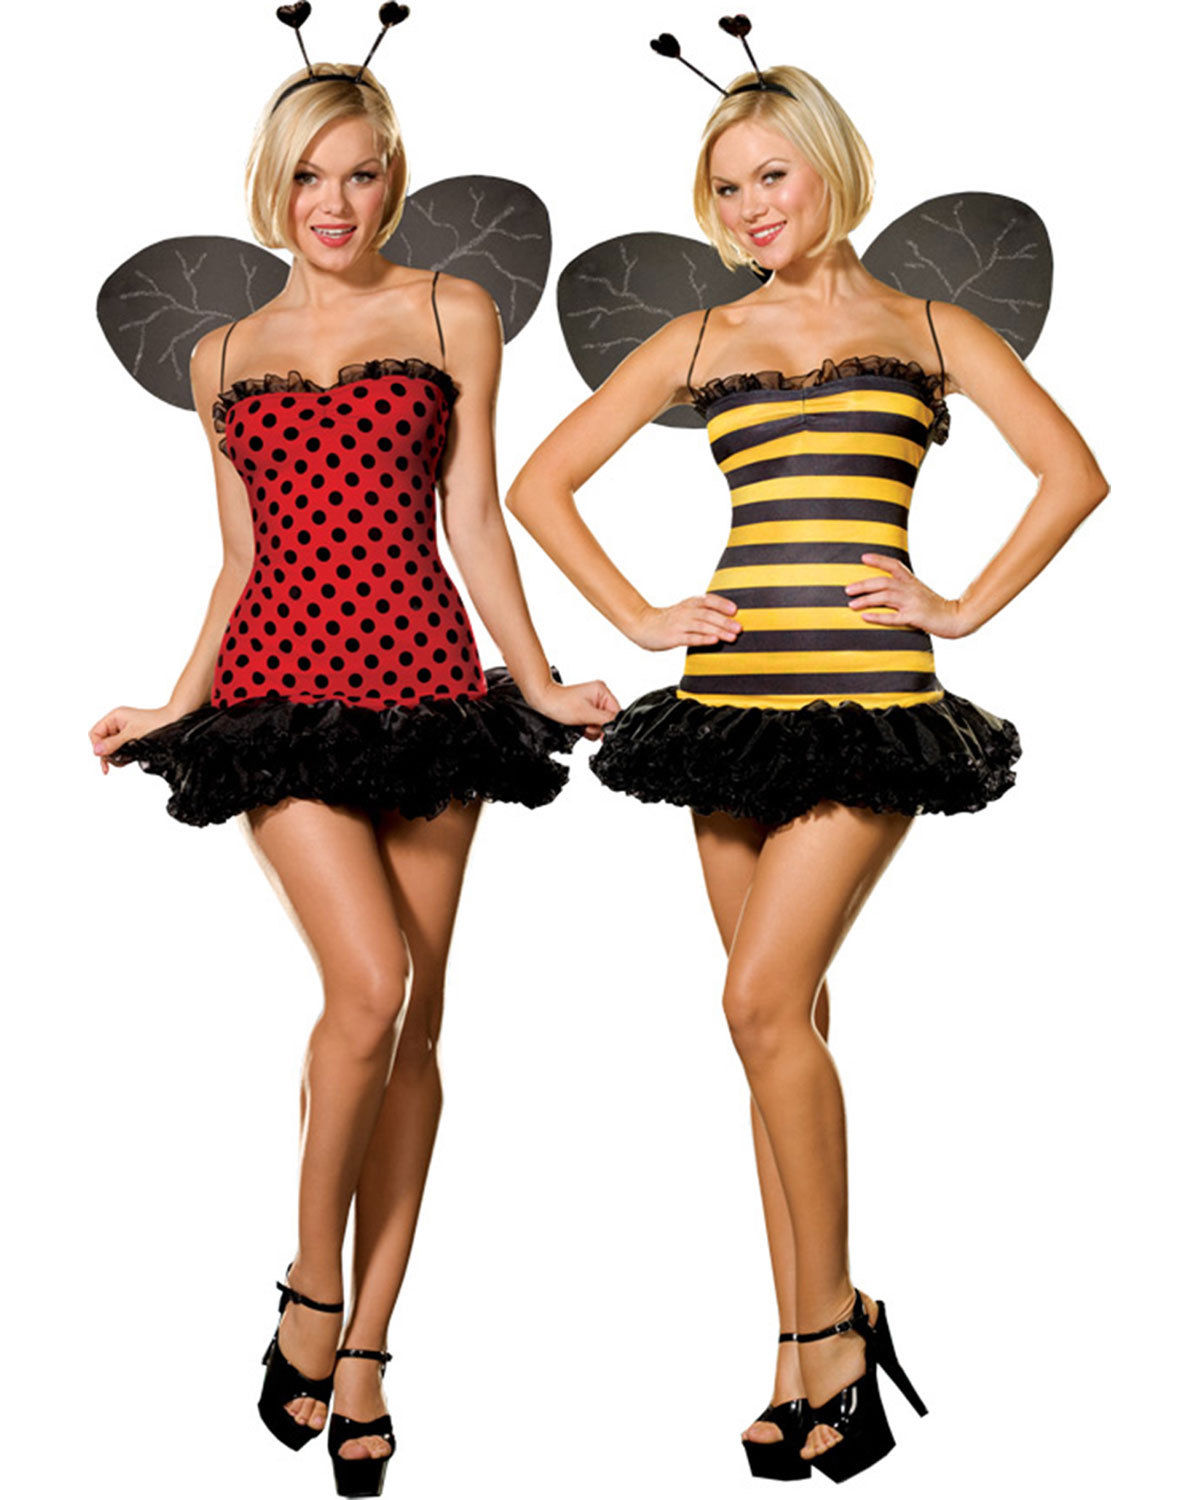 Sexy Ladybird and Bumble Bee Dress! 2 Costumes in 1!